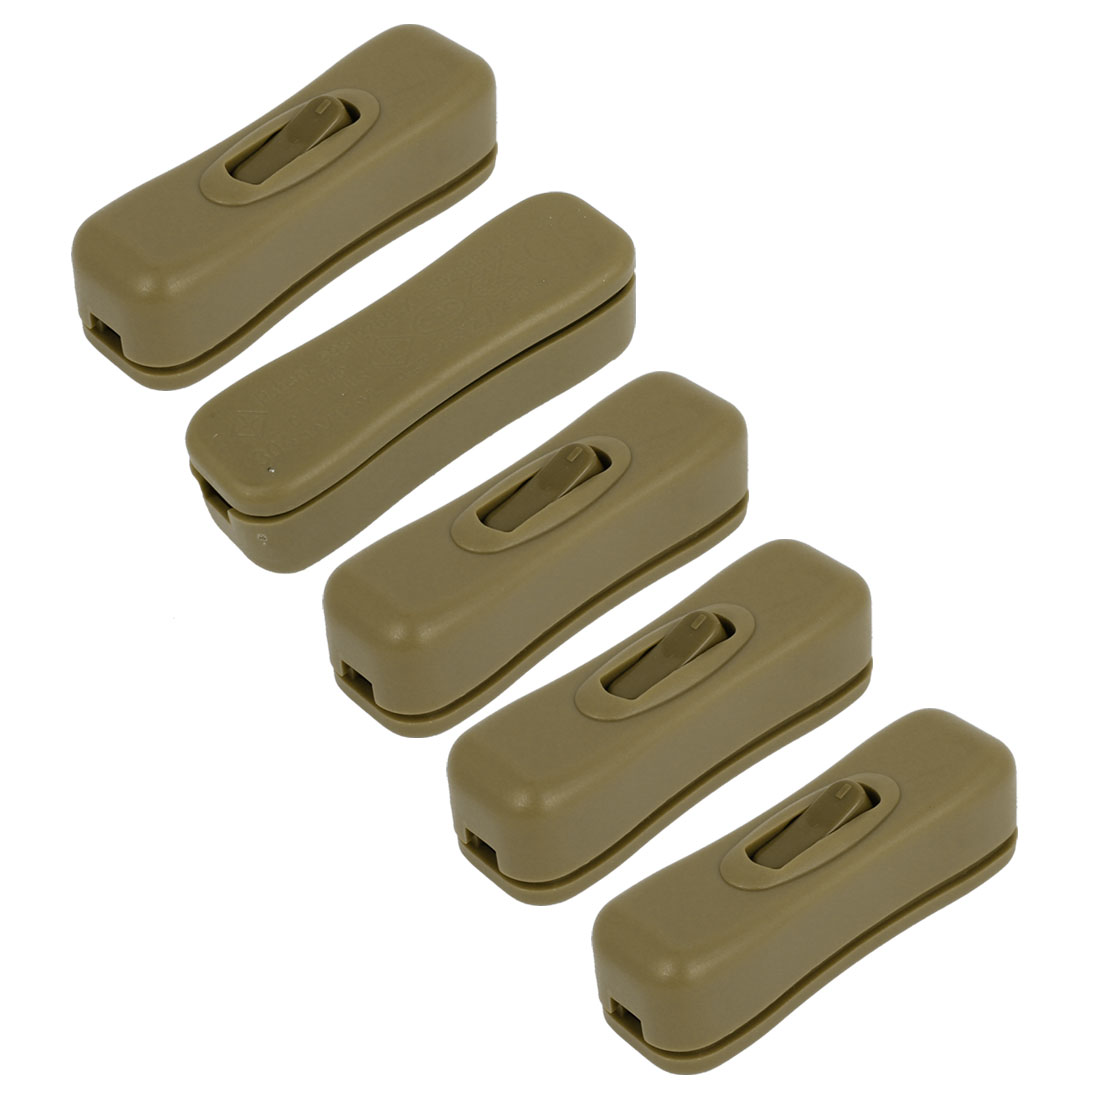 5pcs 1A AC125V Bedroom Table Lamp Controller Inline Cord Rocker Switch Army Green